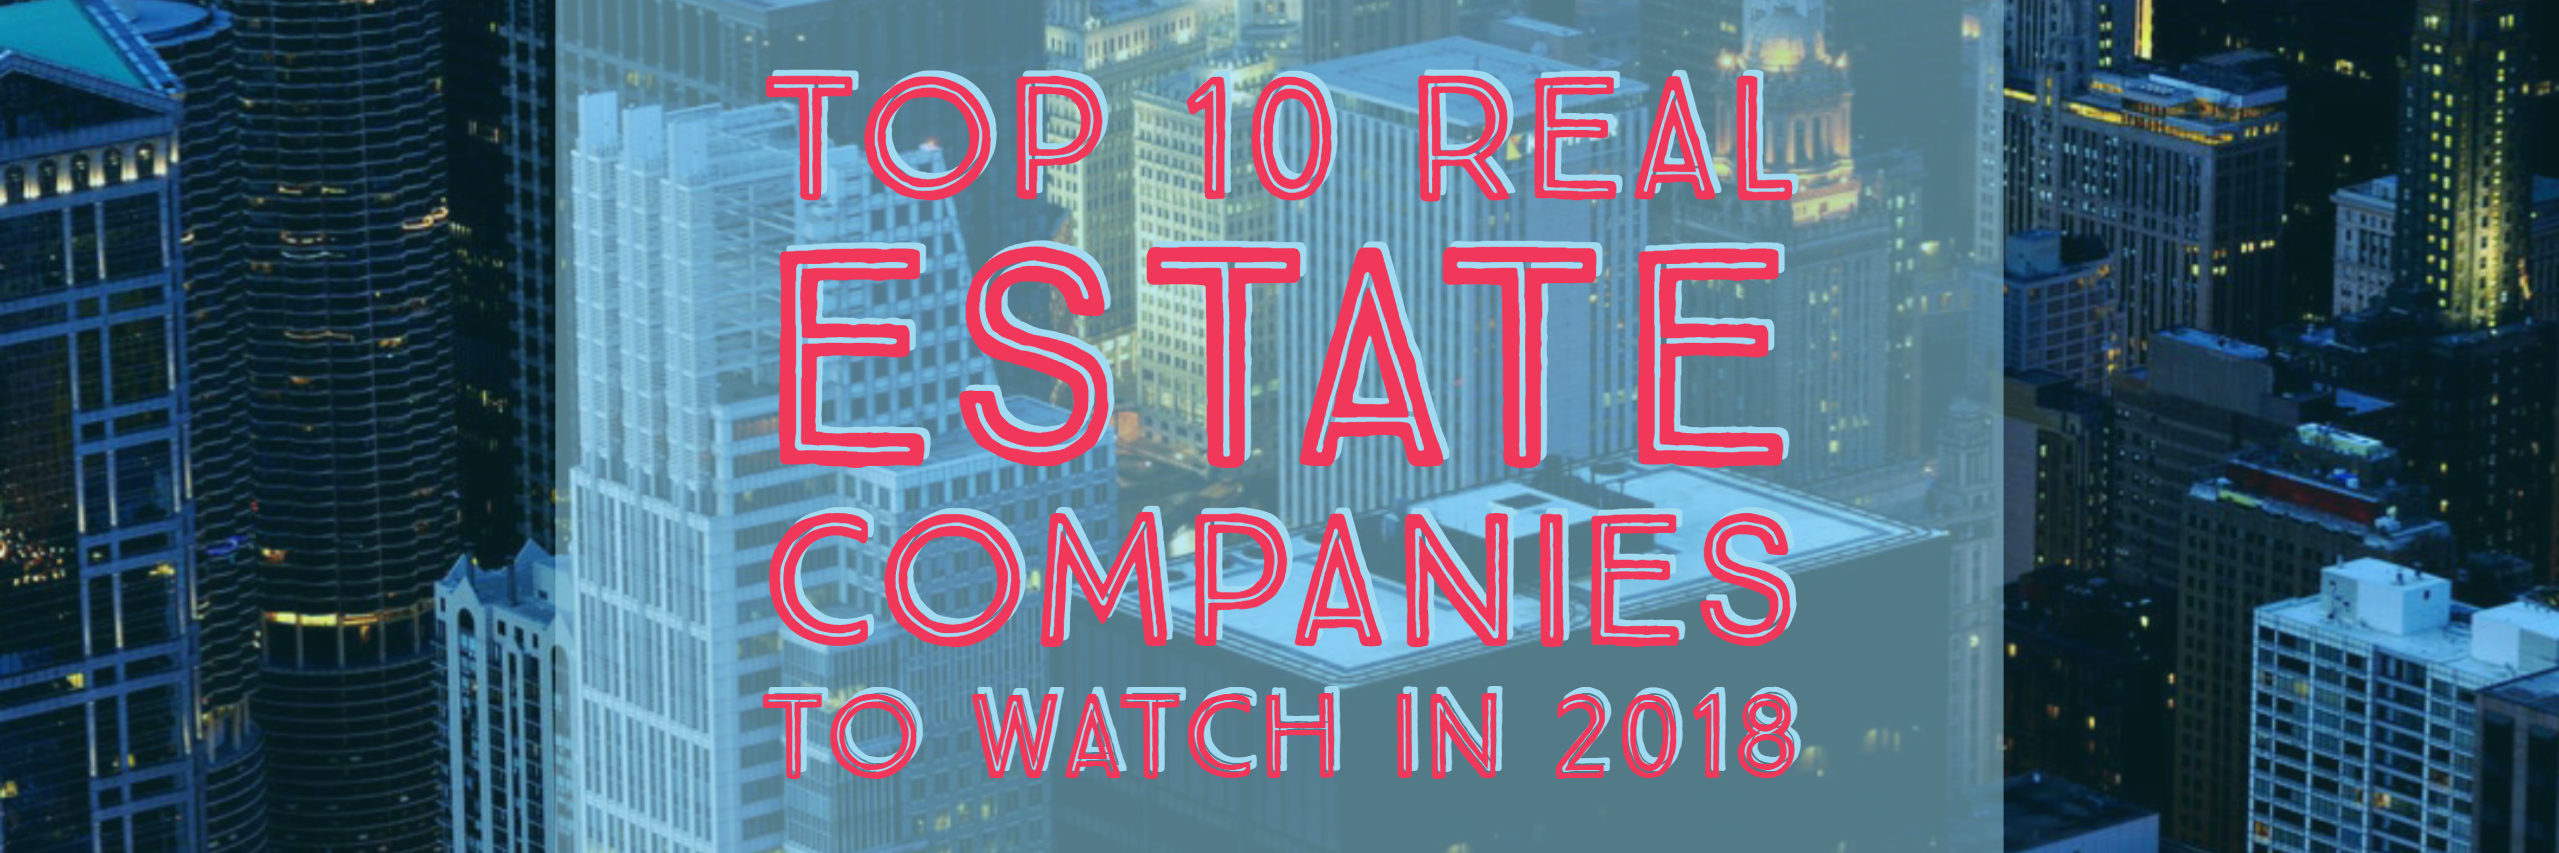 Top 10 Real Estate Companies to Watch in 2018